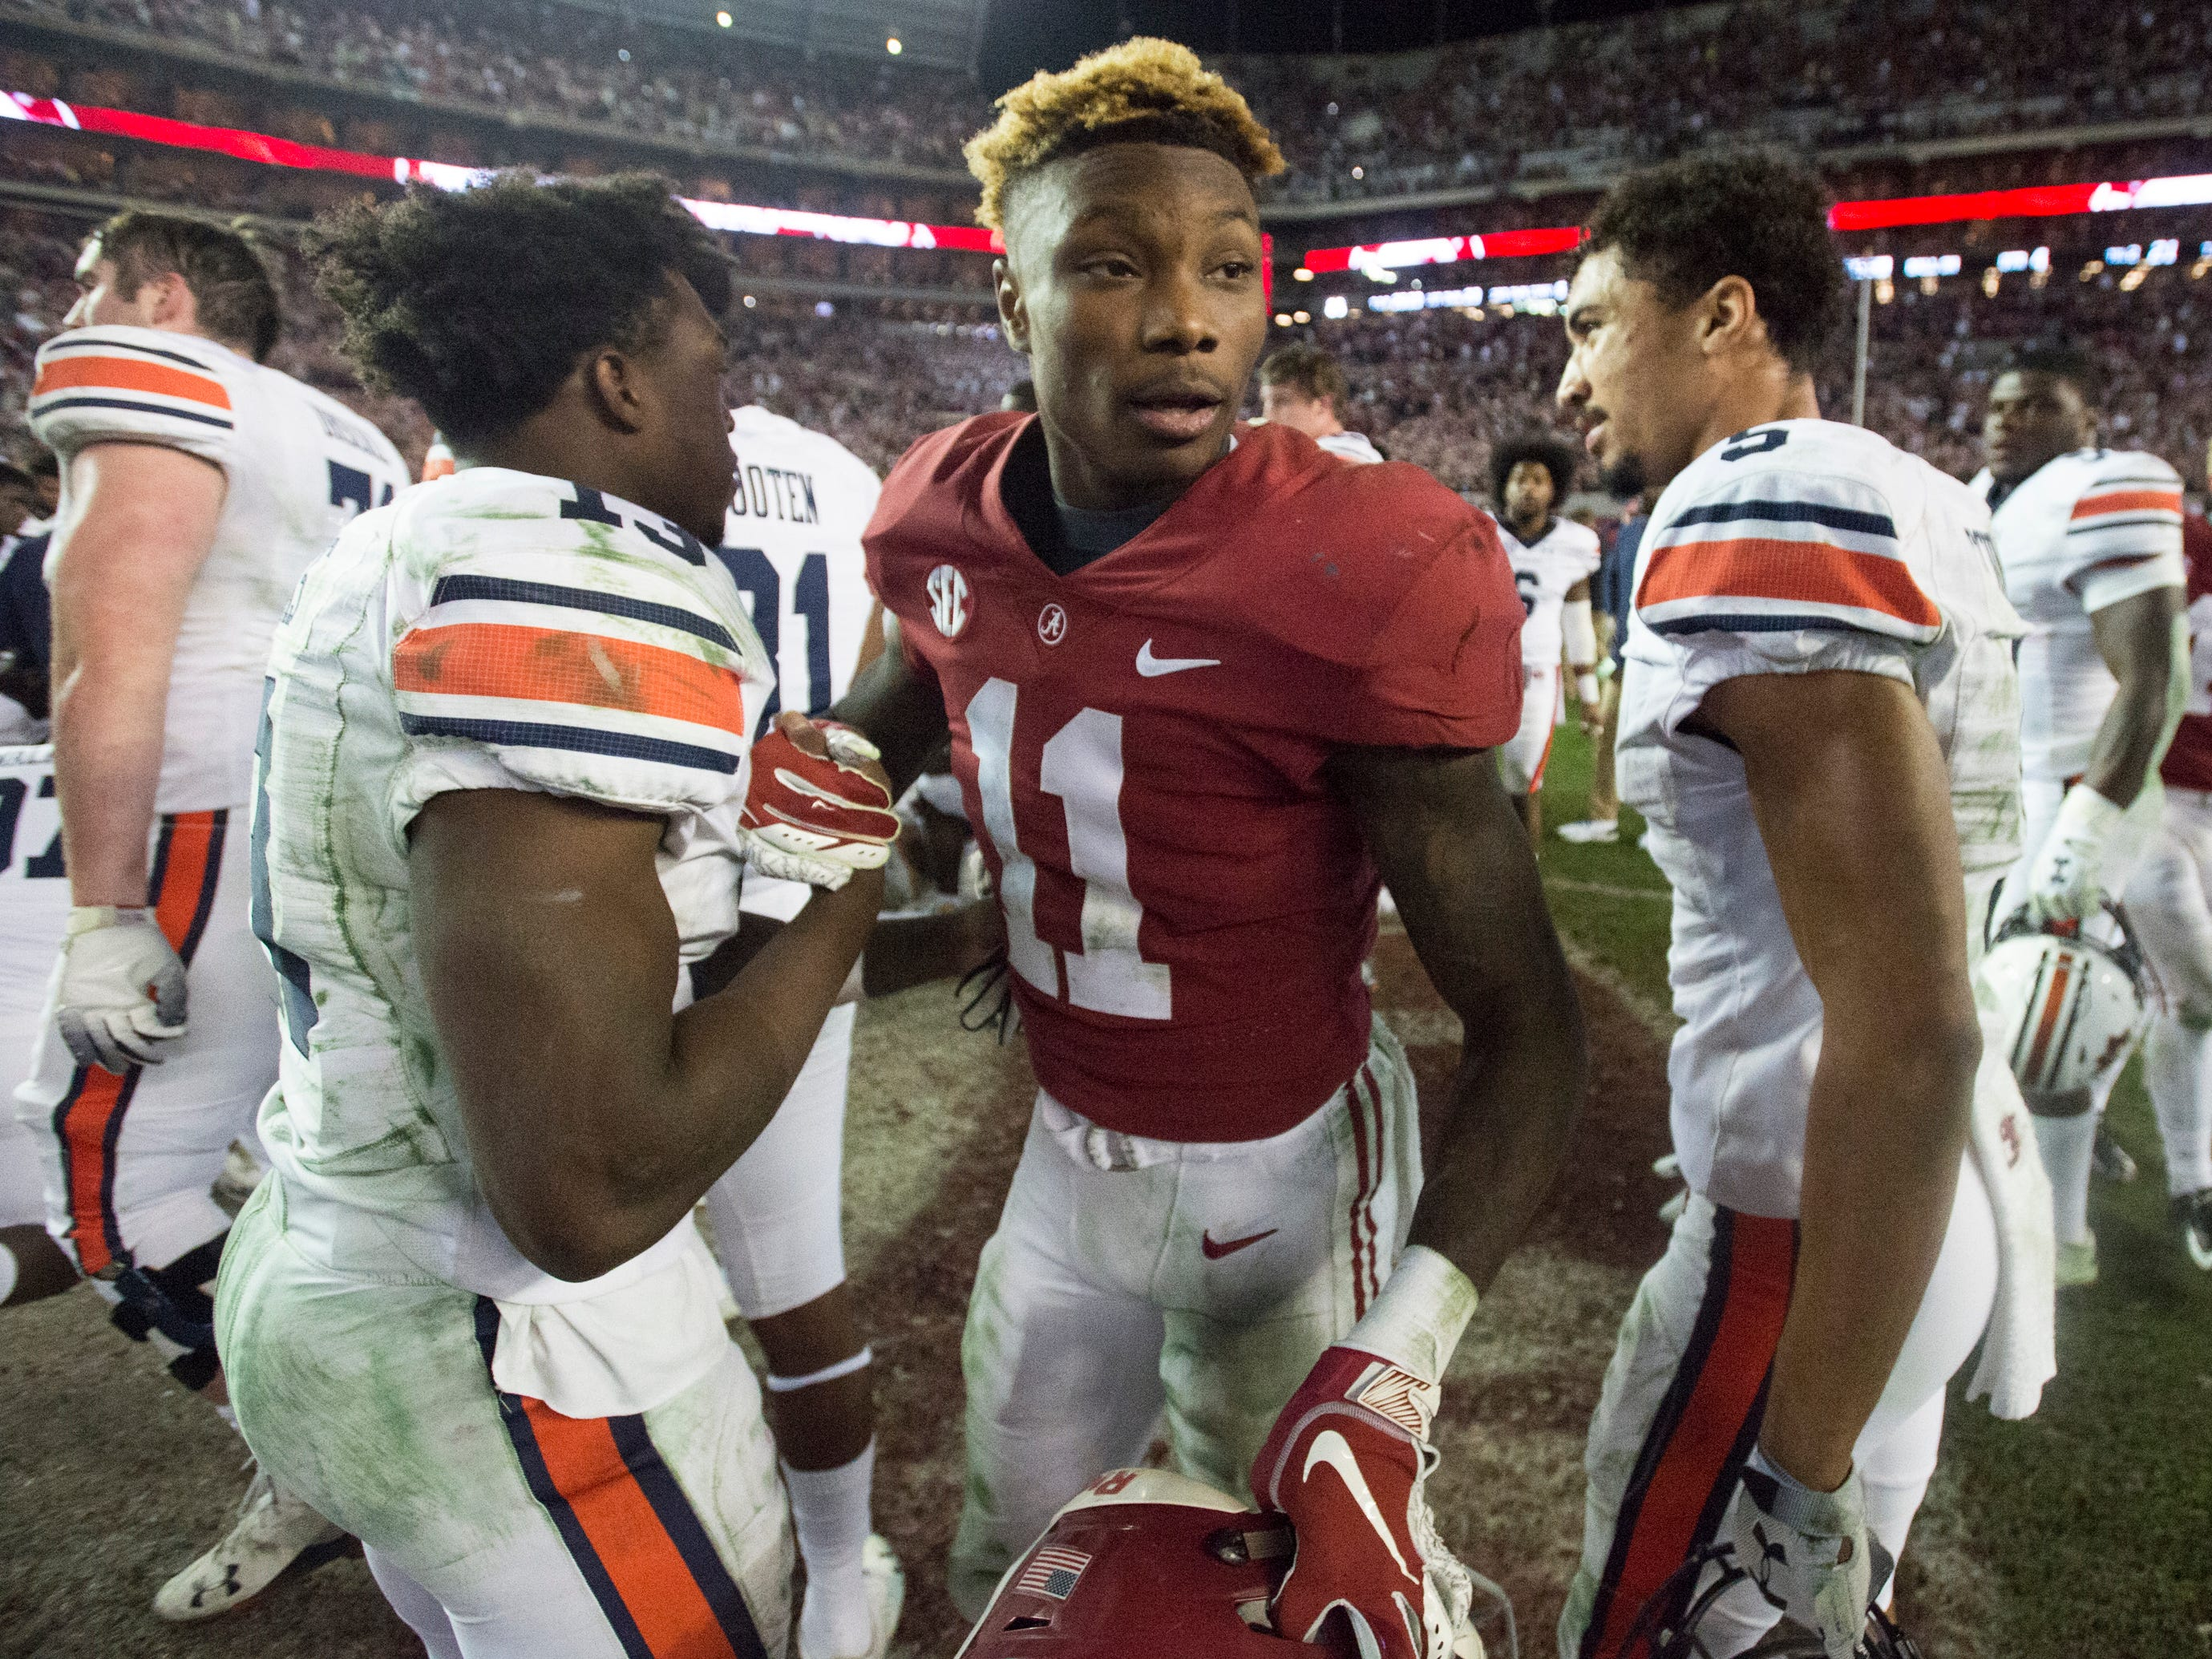 Alabama wide receiver Henry Ruggs, III, (11) shakes hands with Auburn players after the Iron Bowl at Bryant-Denny Stadium in Tuscaloosa, Ala., on Saturday, Nov. 24, 2018. Alabama defeated Auburn 52-21.